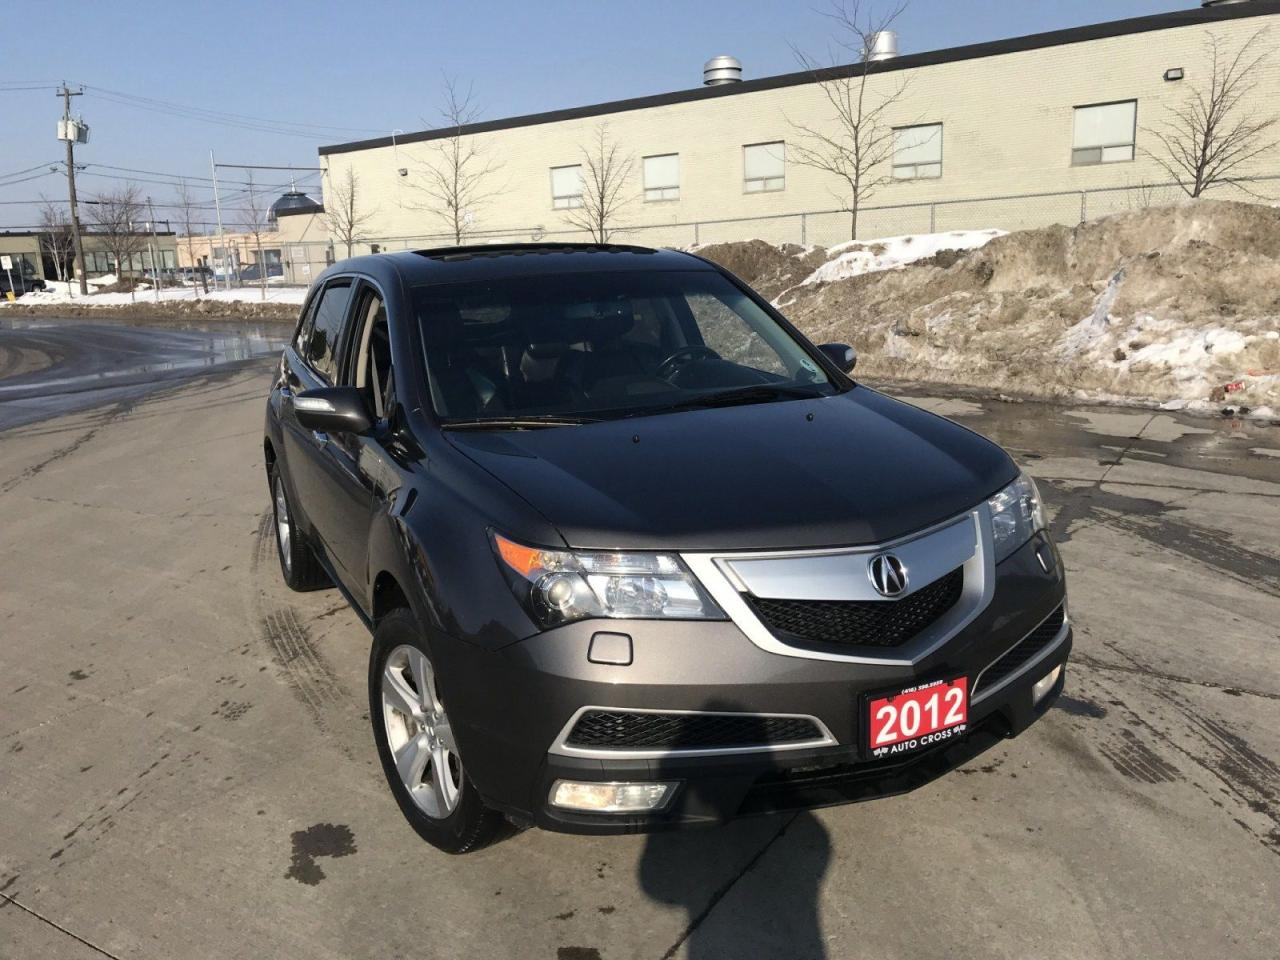 acura appraisal trade vehicles mdx awd package car in store the image elite sh